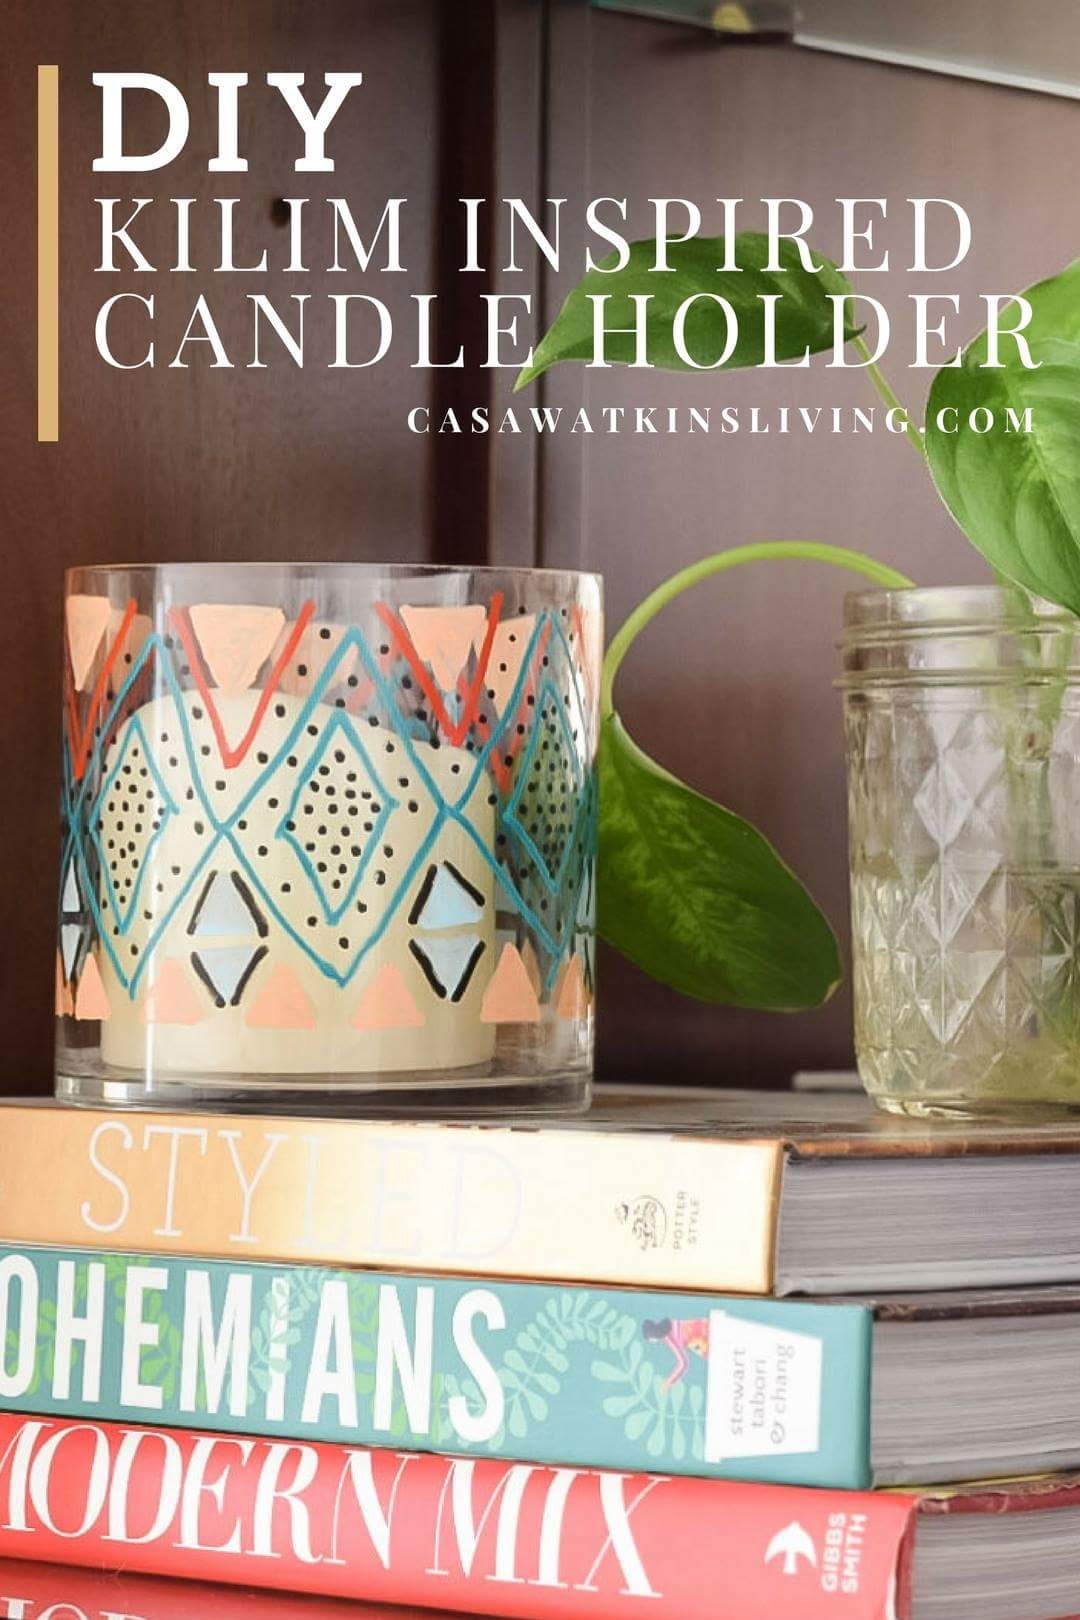 Kilim Inspired Candle Holder